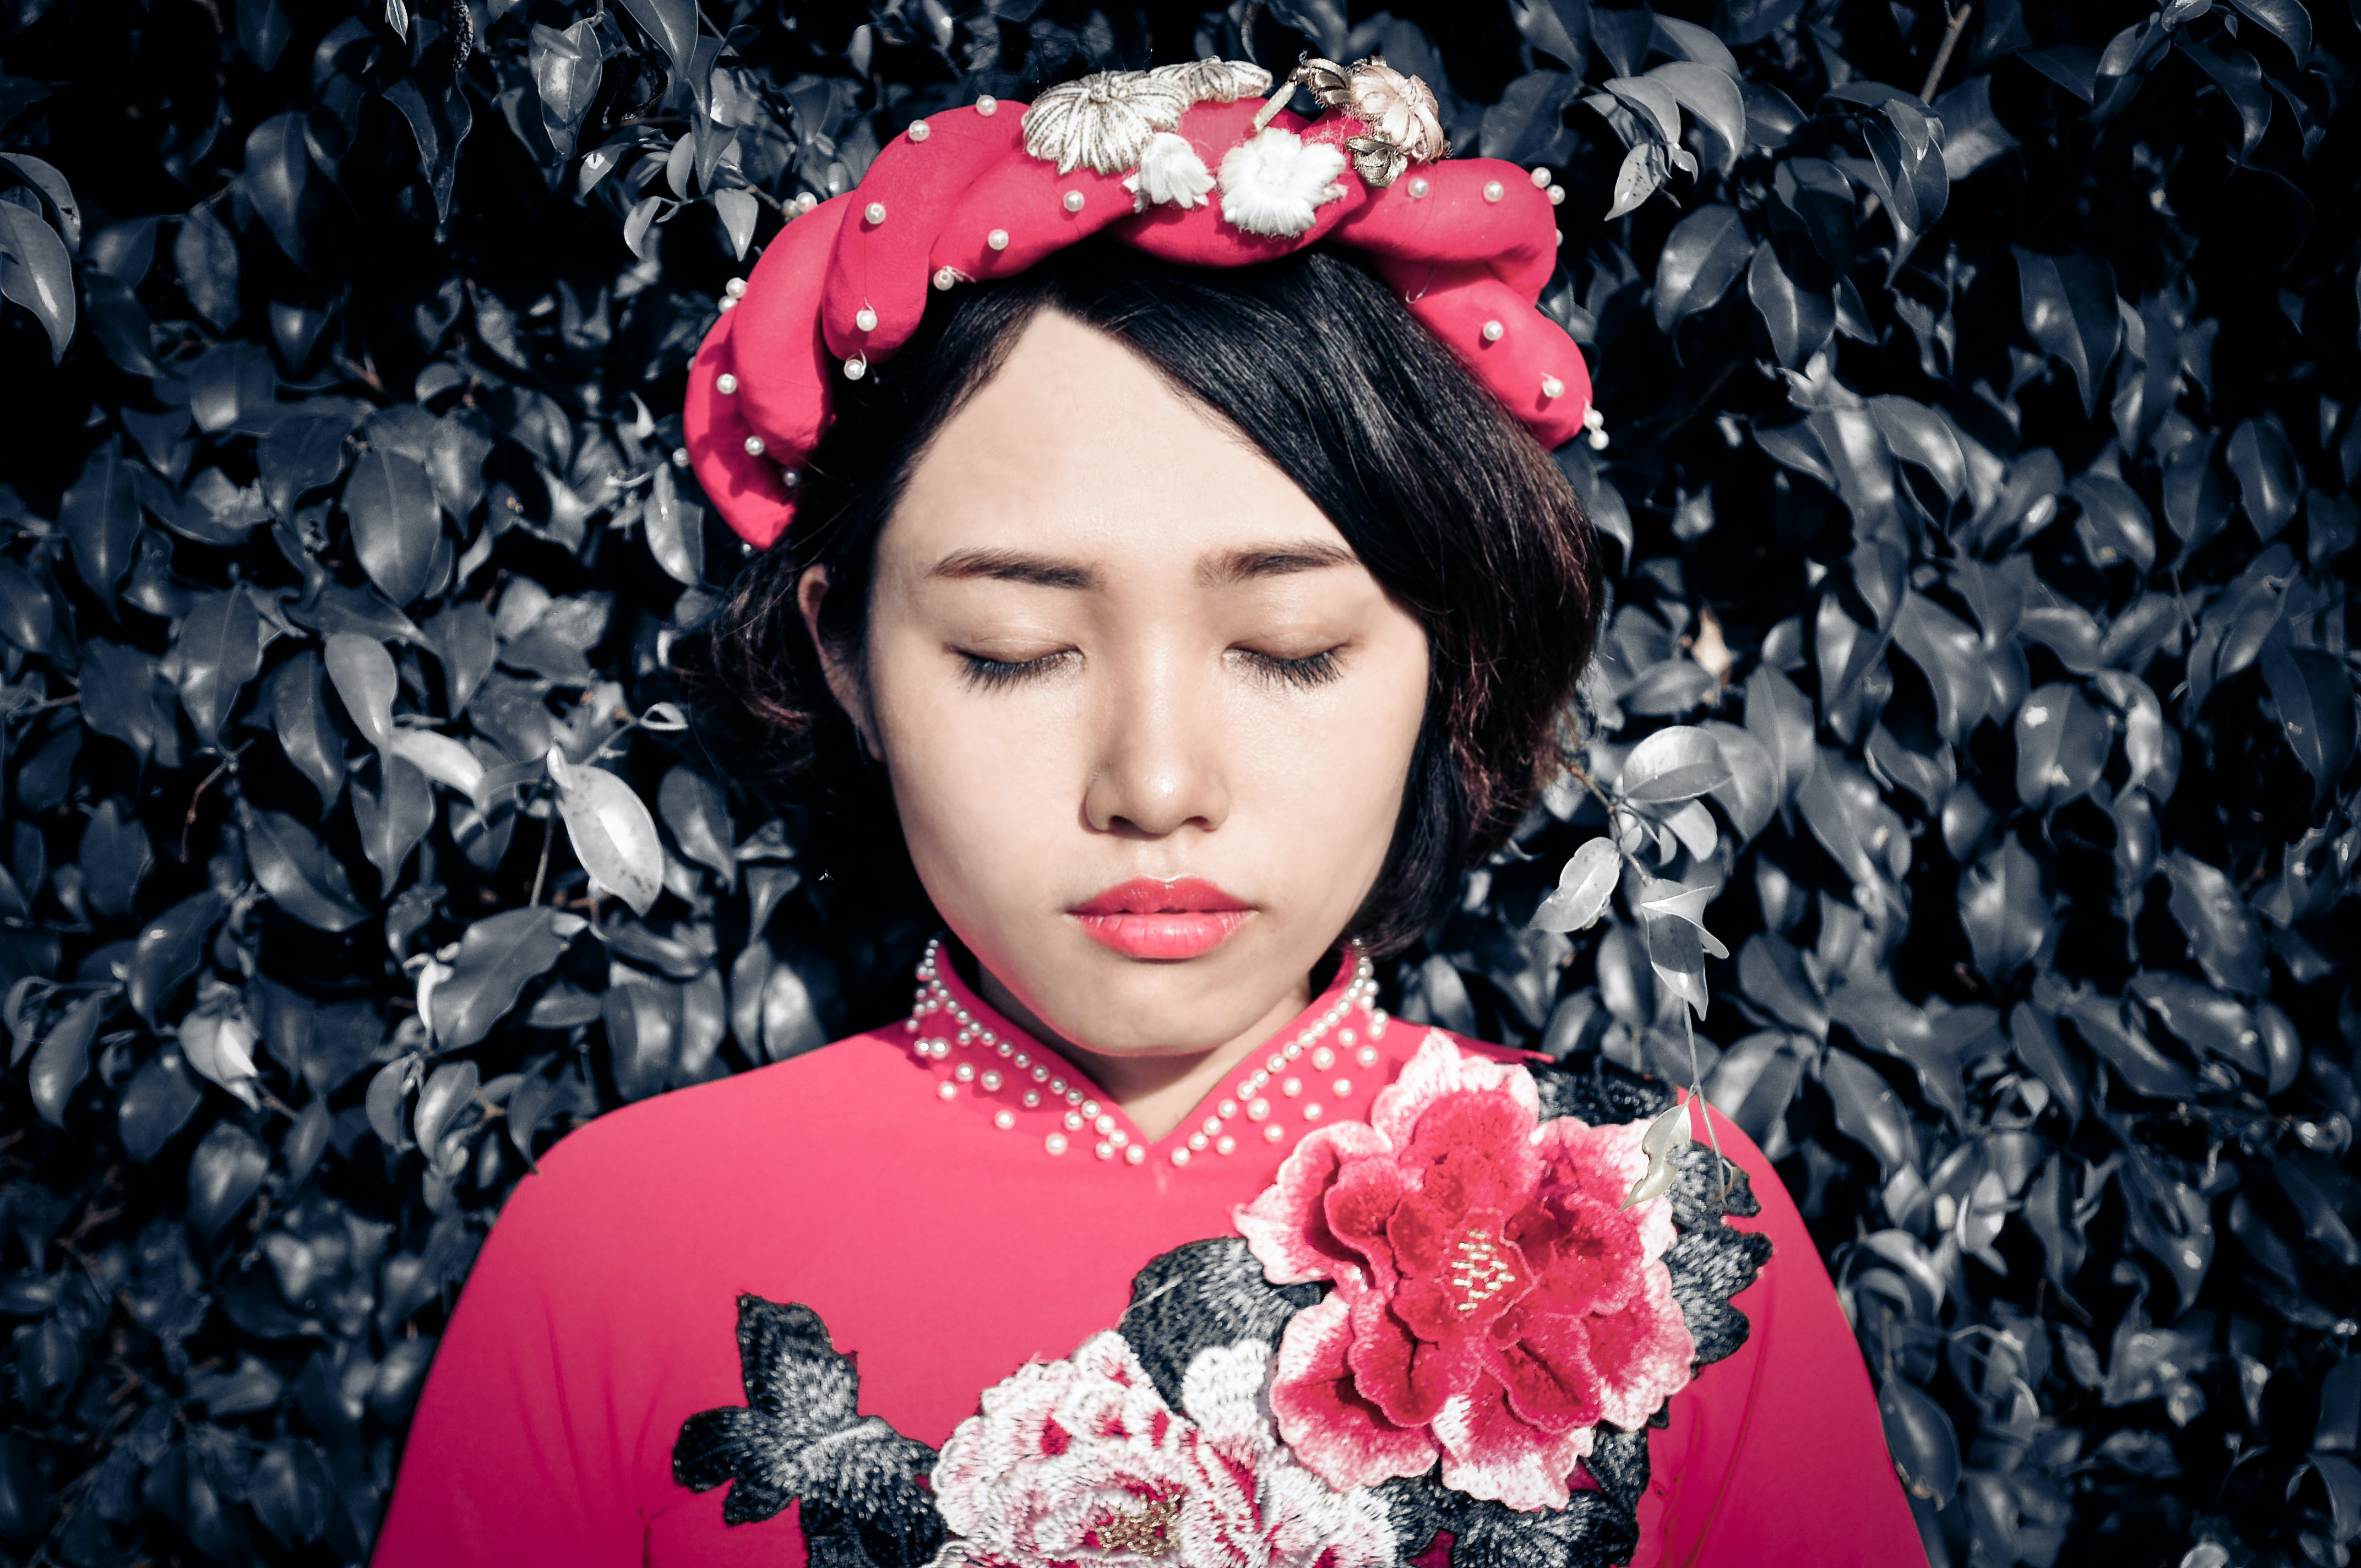 Woman With Her Eyes Closed Wearing Pink Floral Top